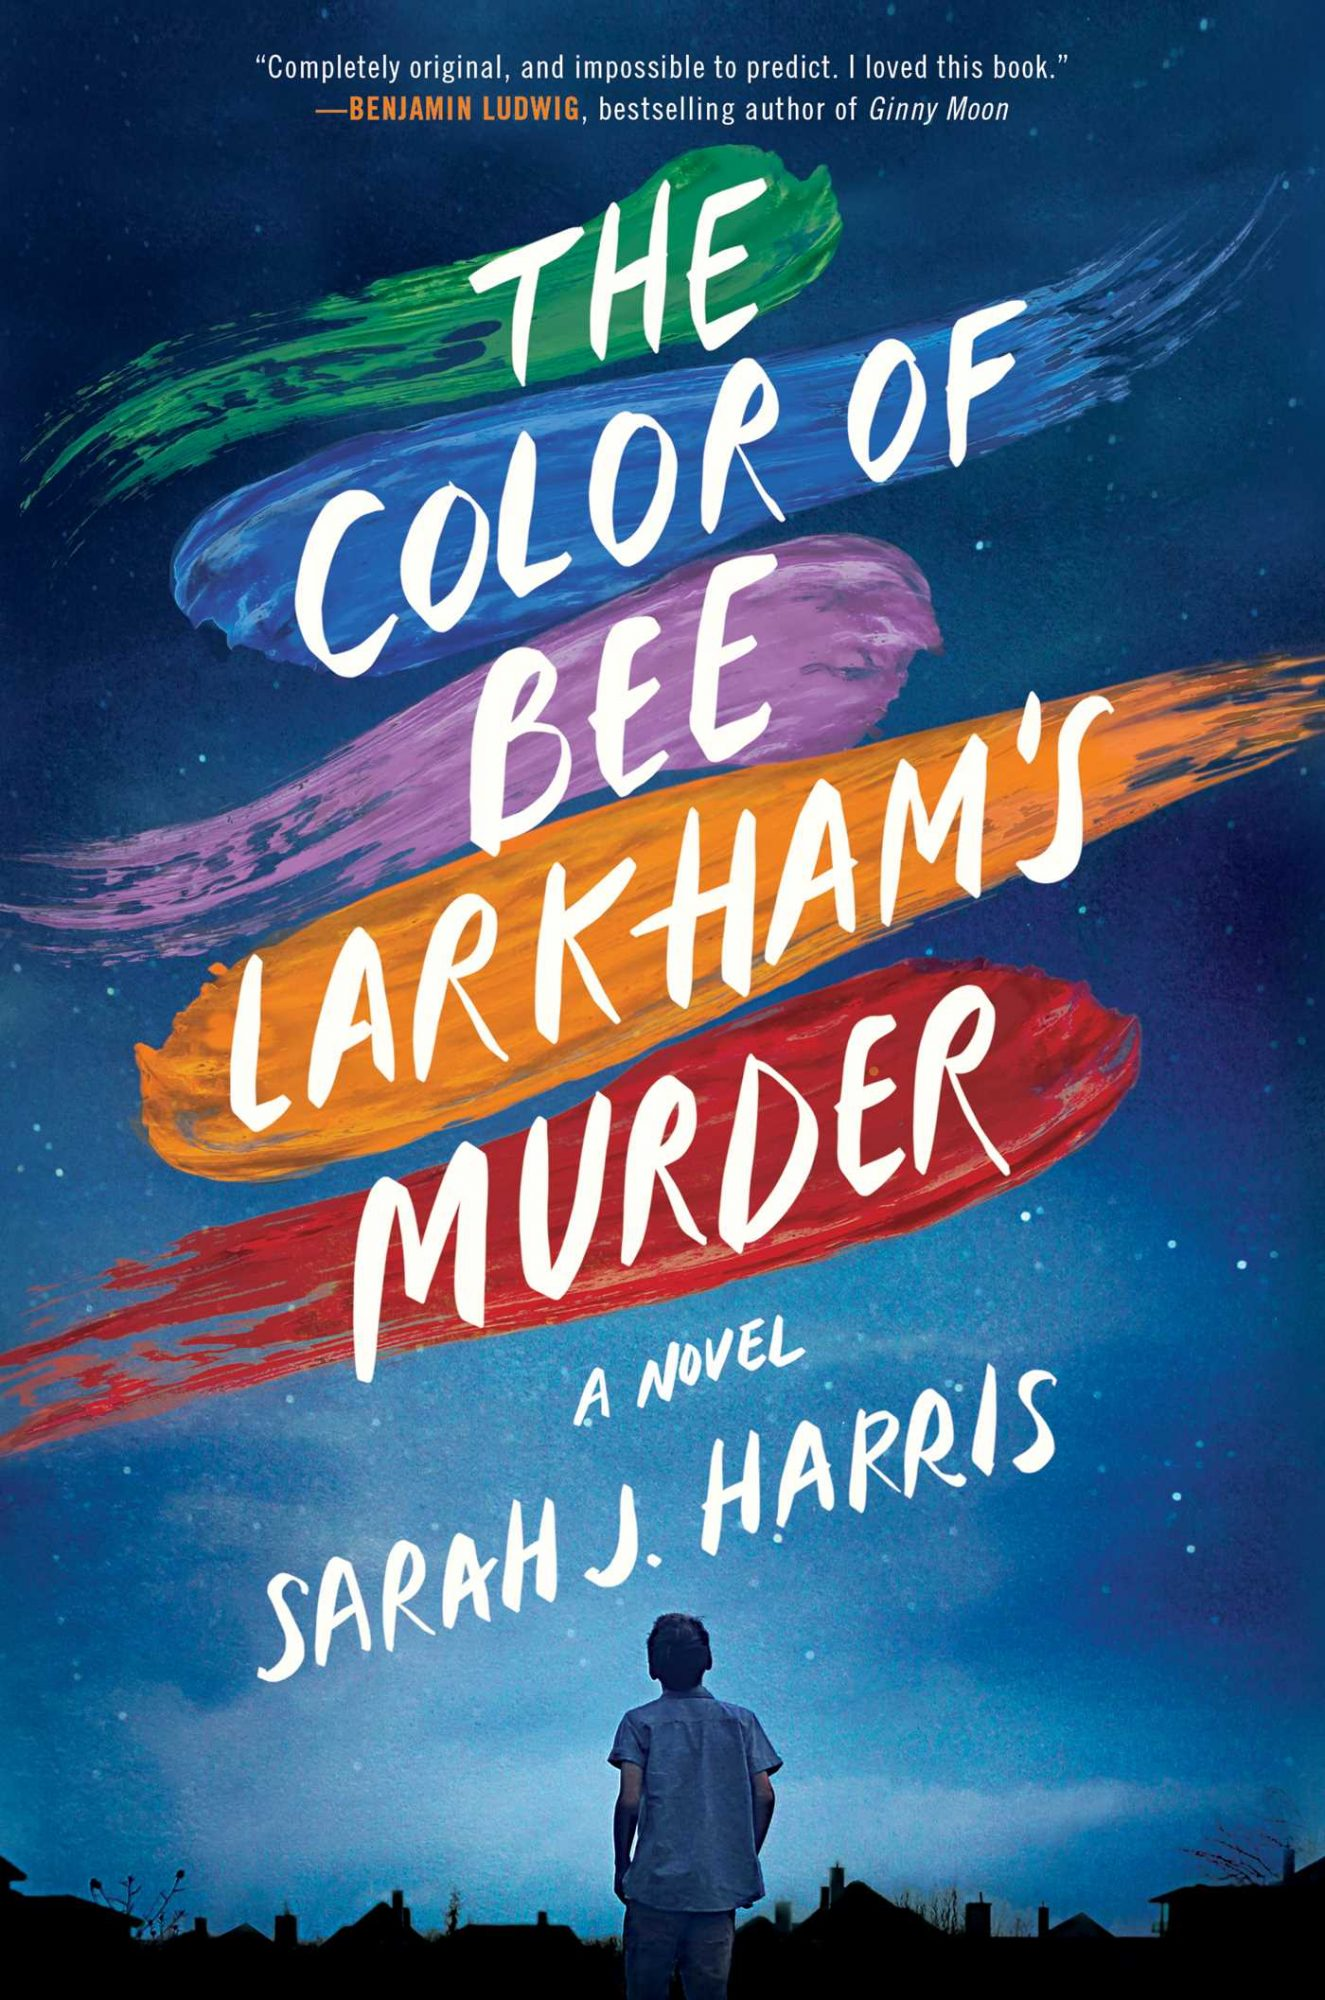 picture-of-the-color-of-bee-larkhams-murder-book-photo.jpg